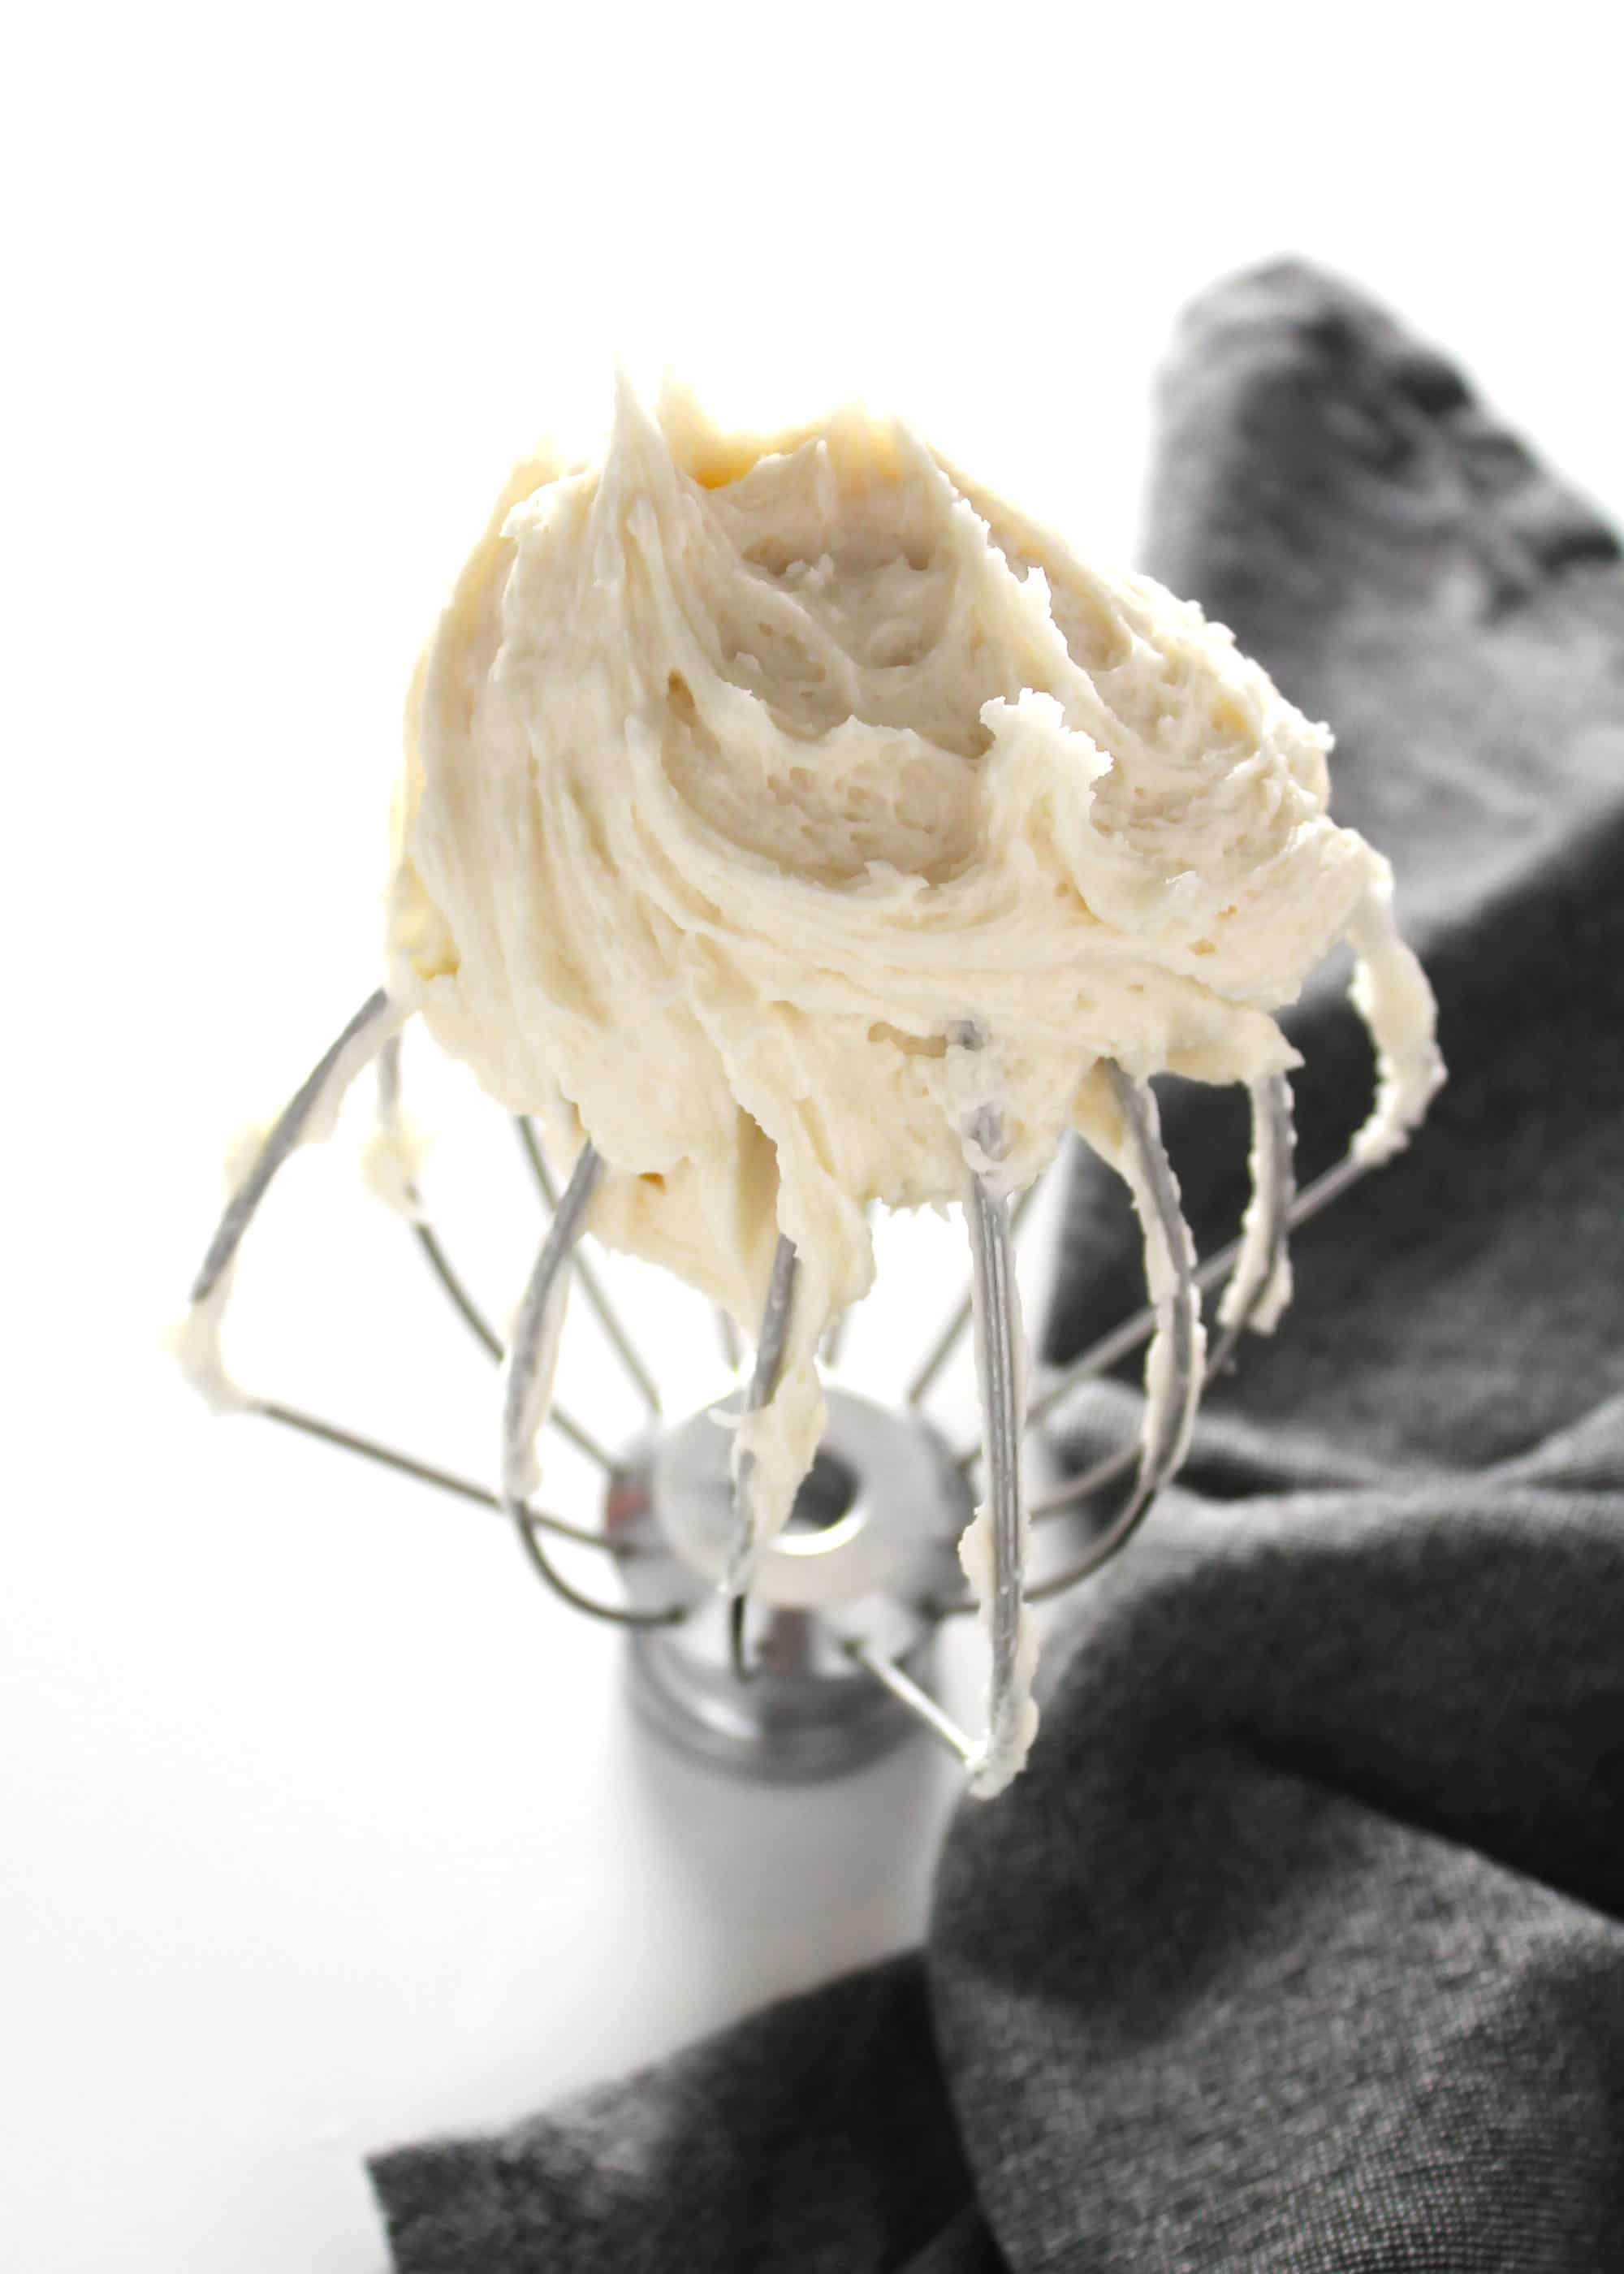 buttercream frosting on whisk attachment